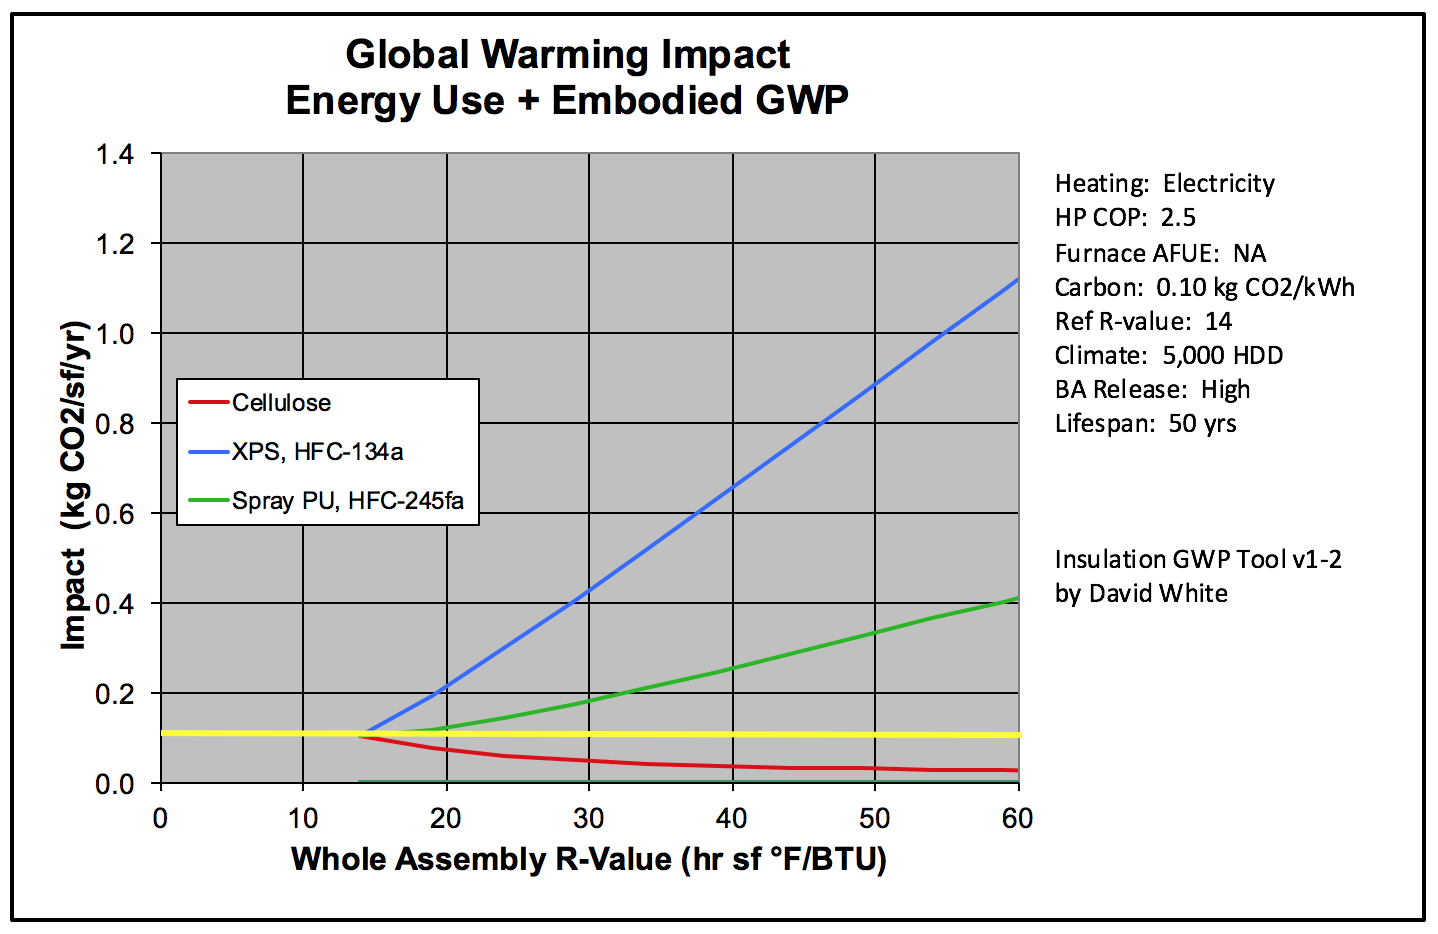 Global warming impact from David White's calculator, electric heat pump with clean electricity